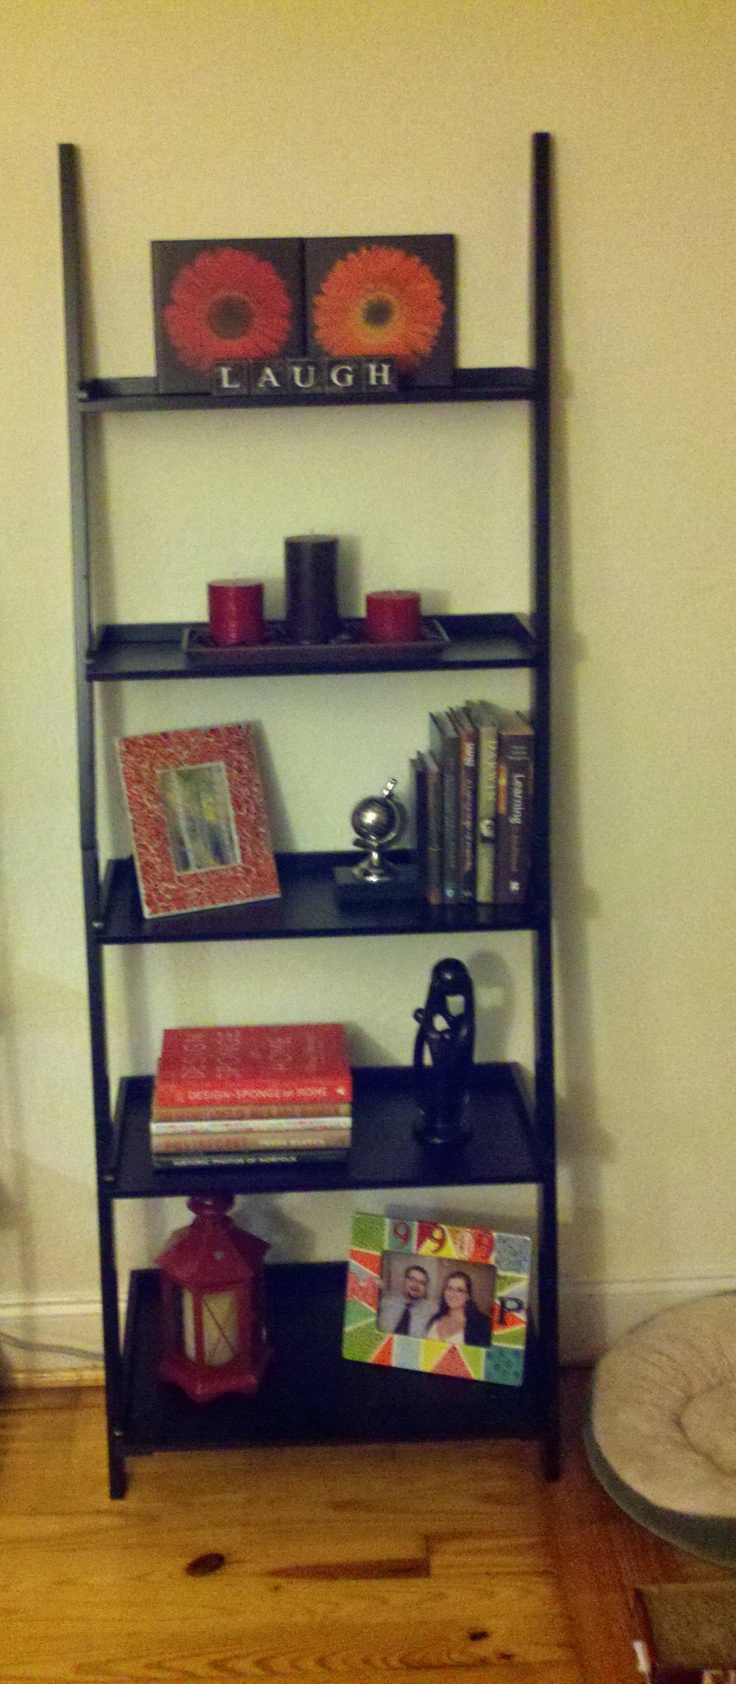 So excited about our new ladder shelf and all of the decorations I got from tj maxx home goods!